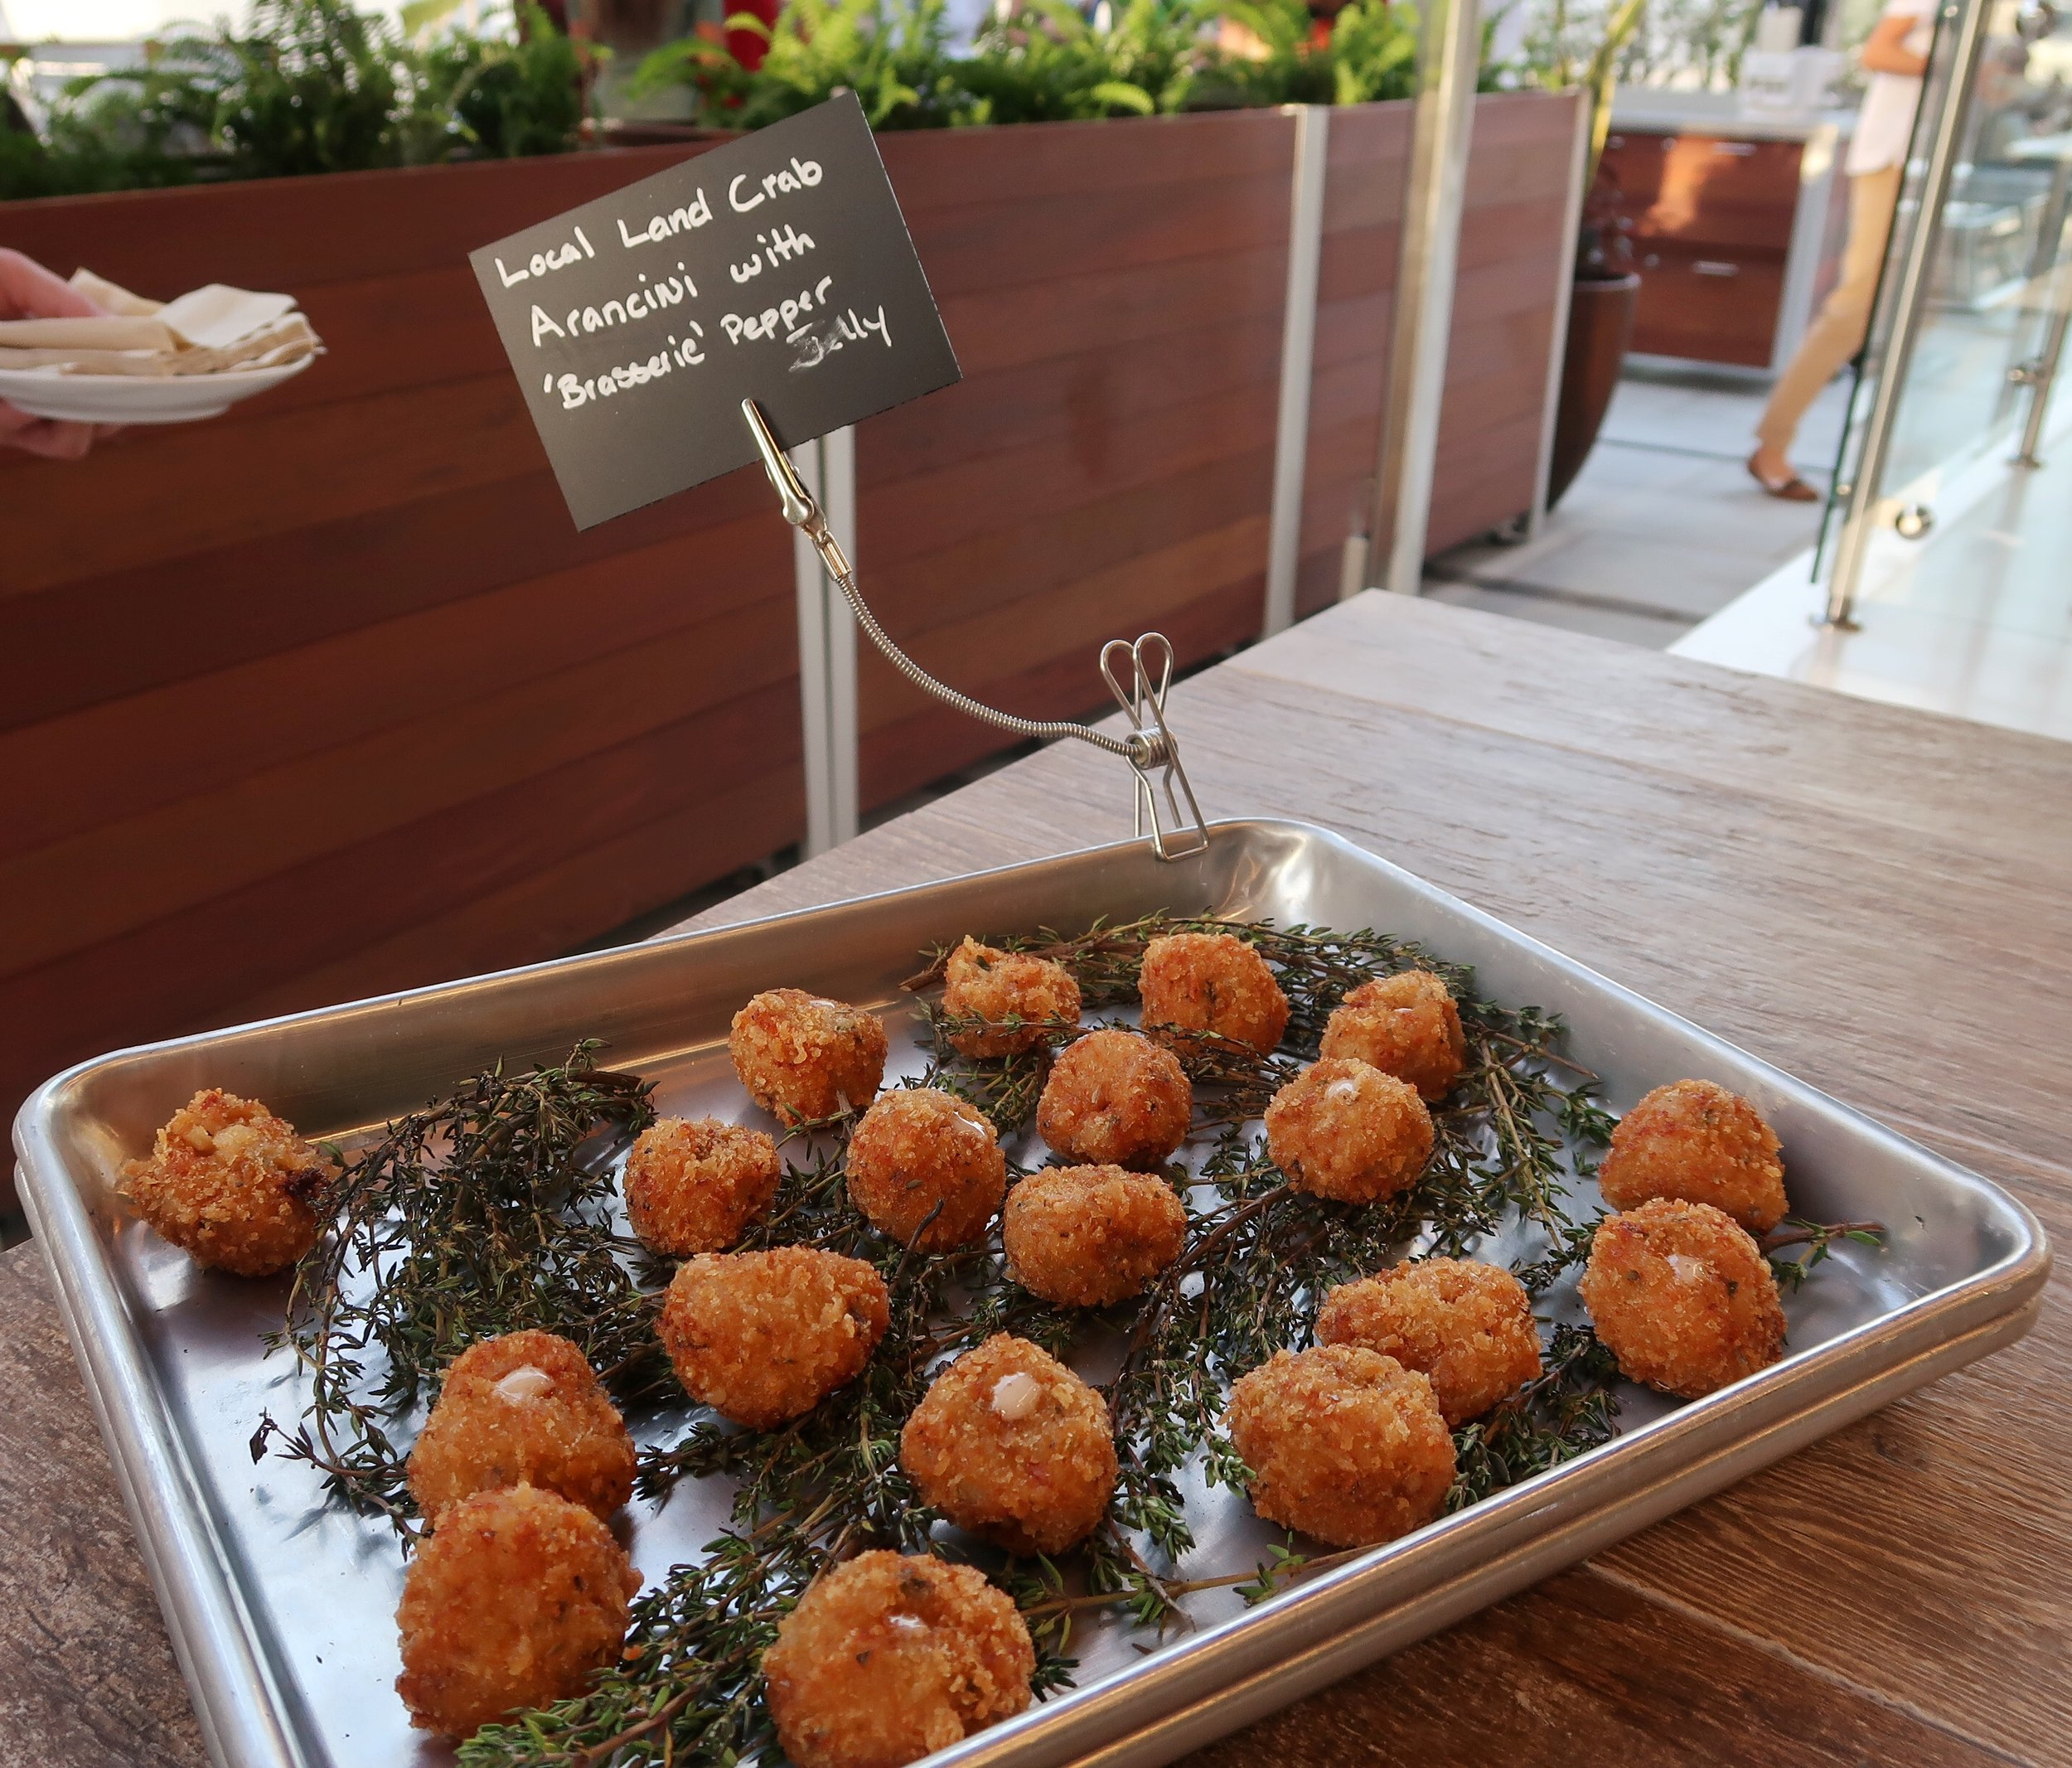 Local Land Crab Arancini infused with local pepper jelly